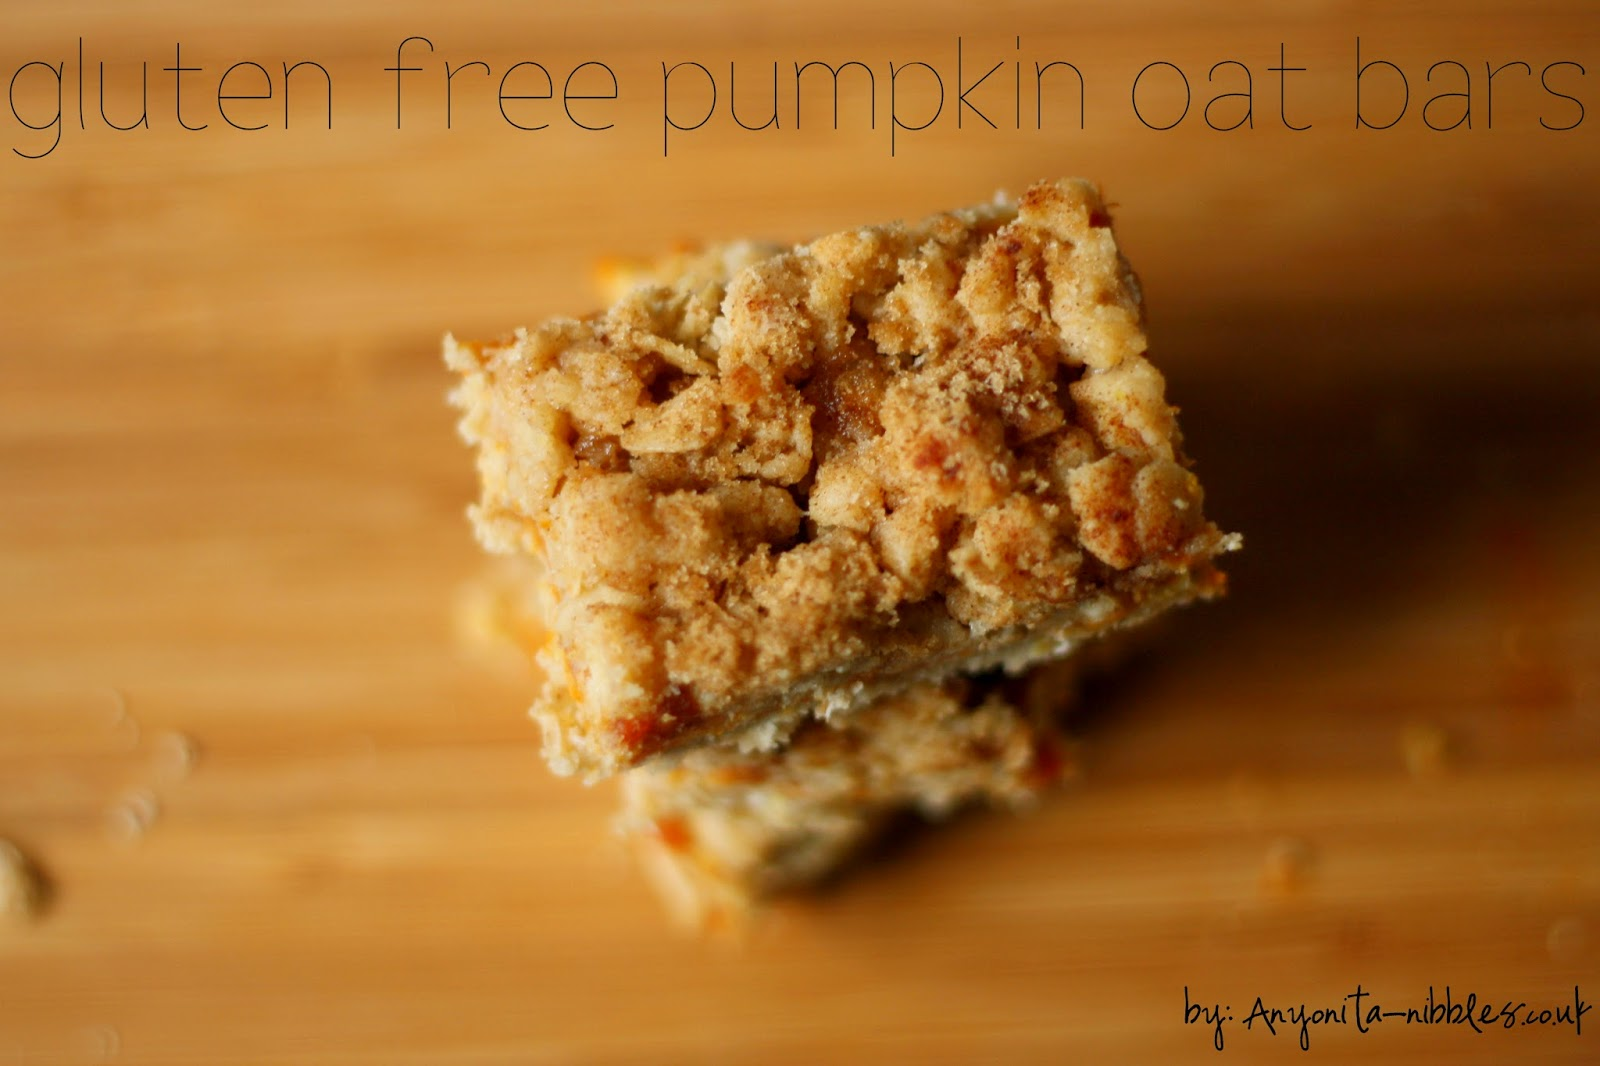 Thanksgiving takeaway dessert: Gluten Free Pumpkin Oat Bars from Anyonita-nibbles.co.uk